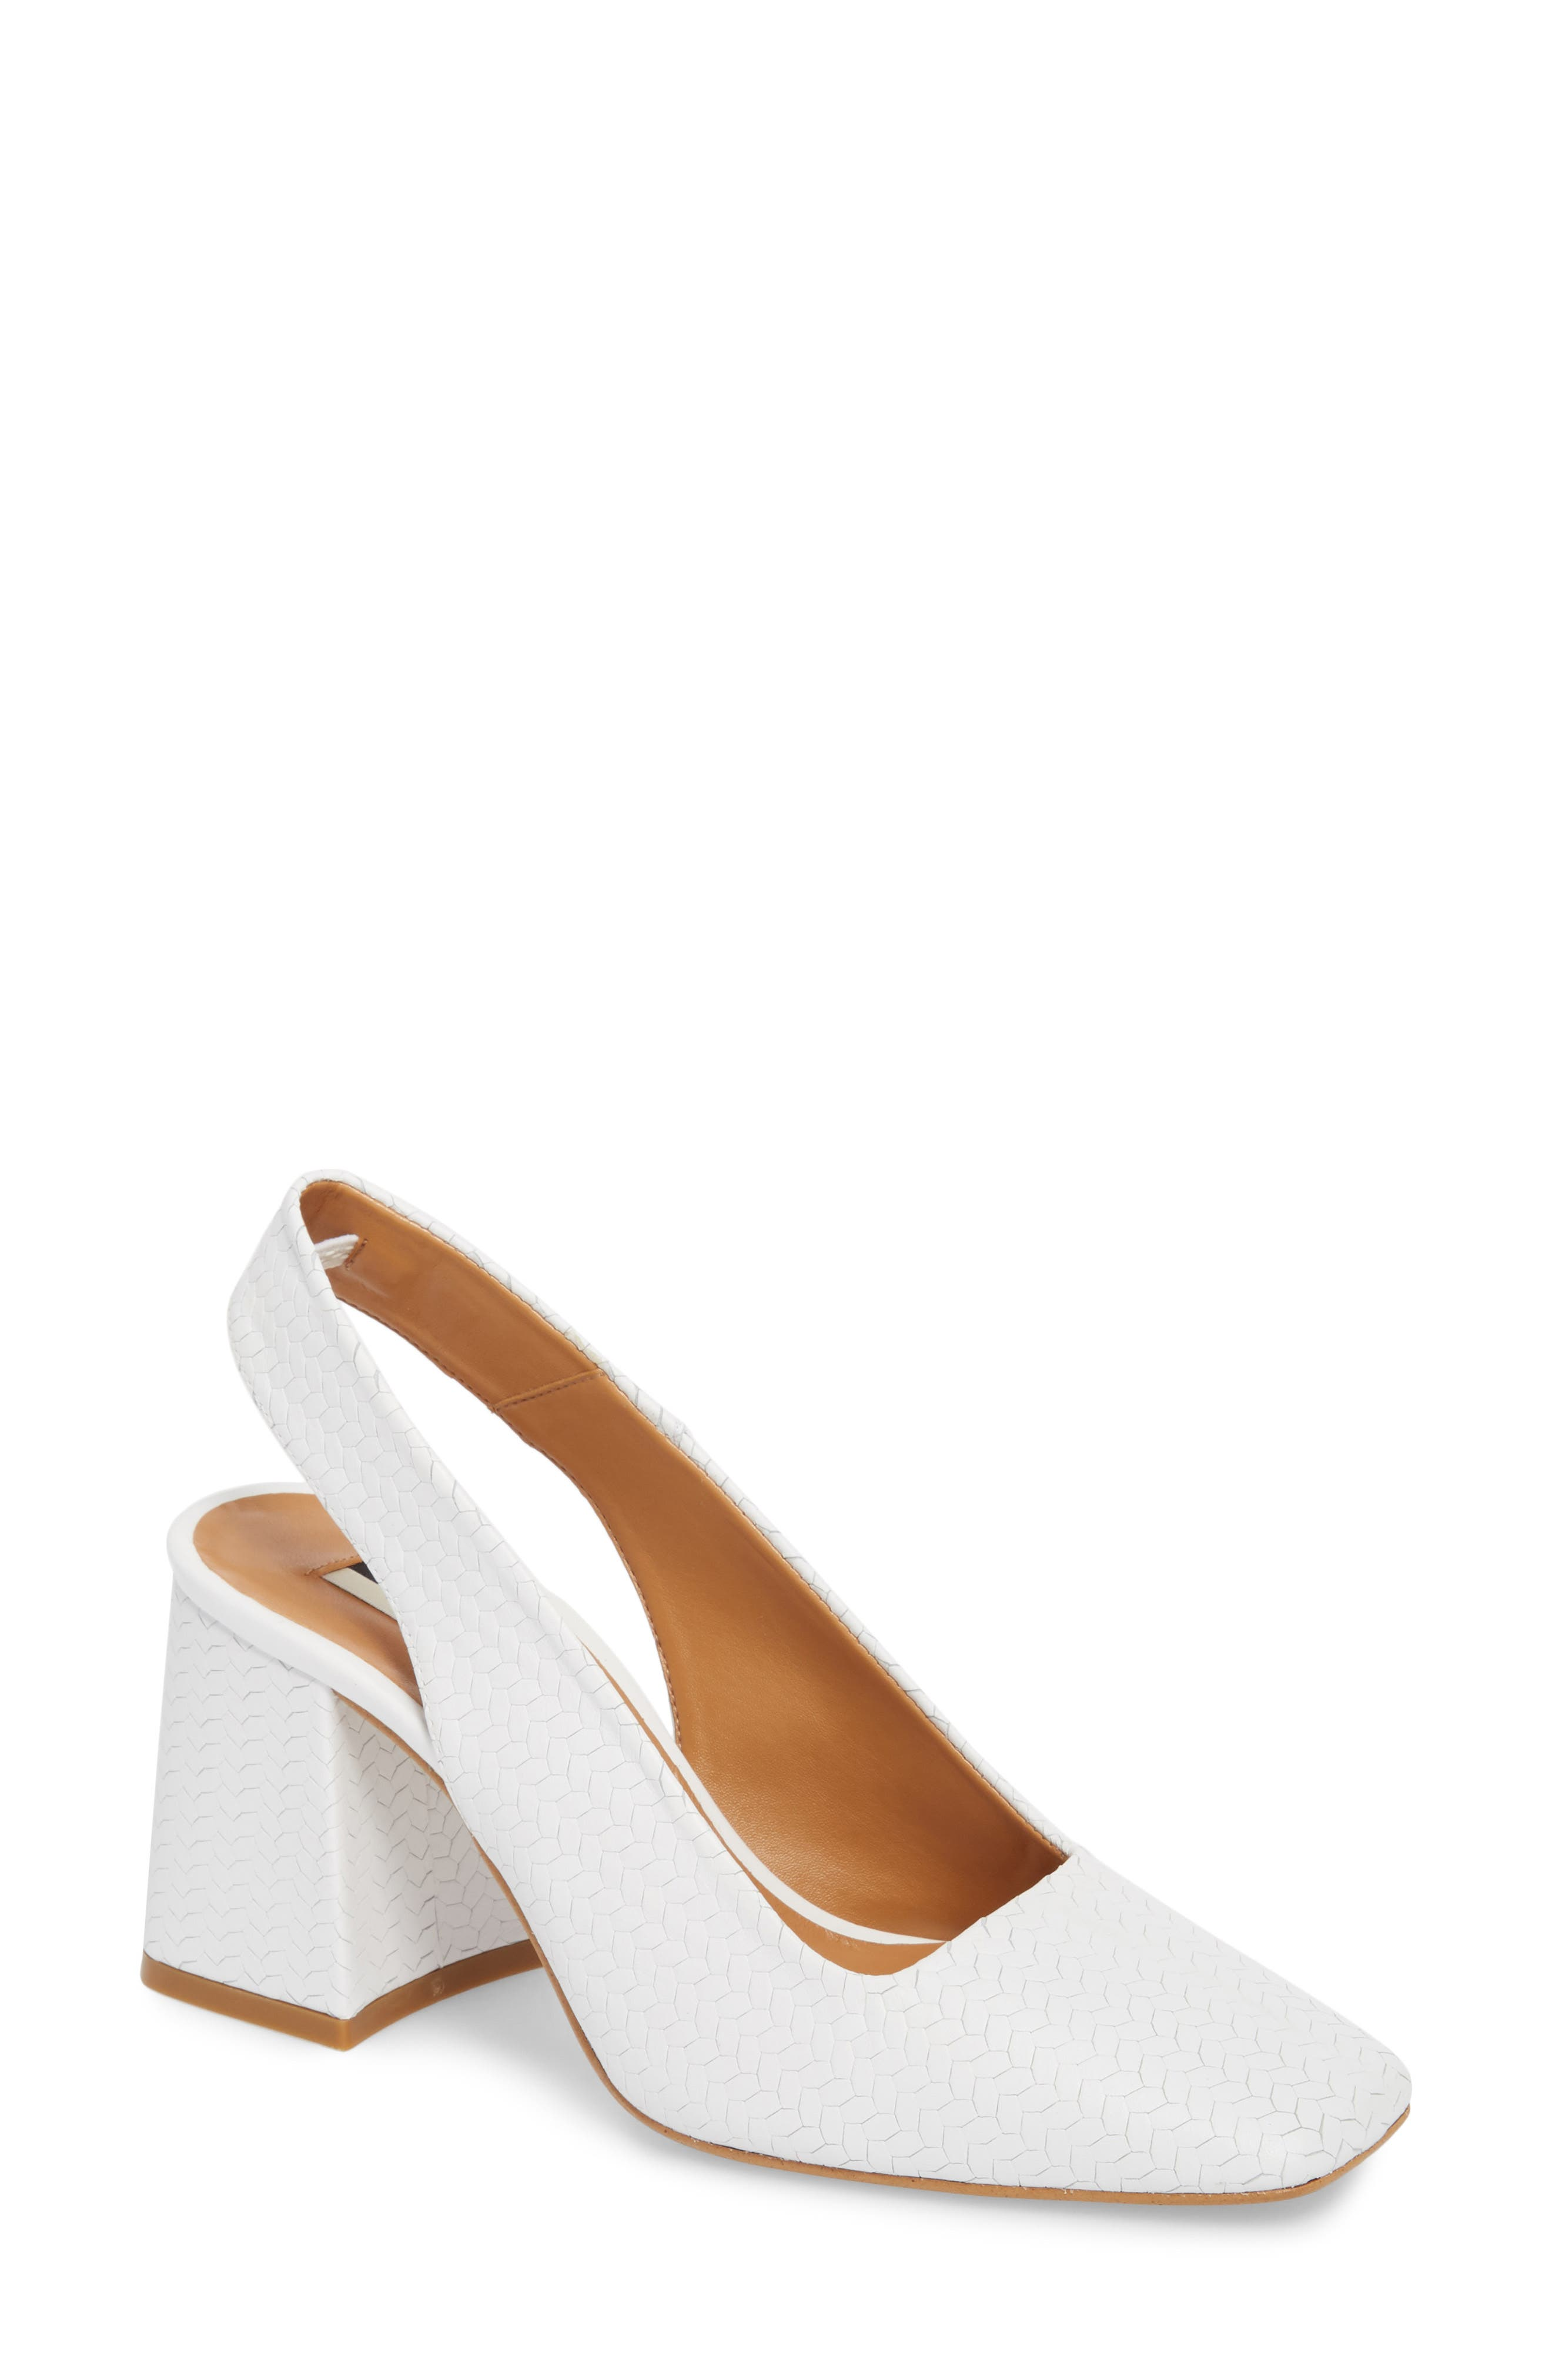 Gainor Block Heel Slingback Pump,                             Main thumbnail 1, color,                             White